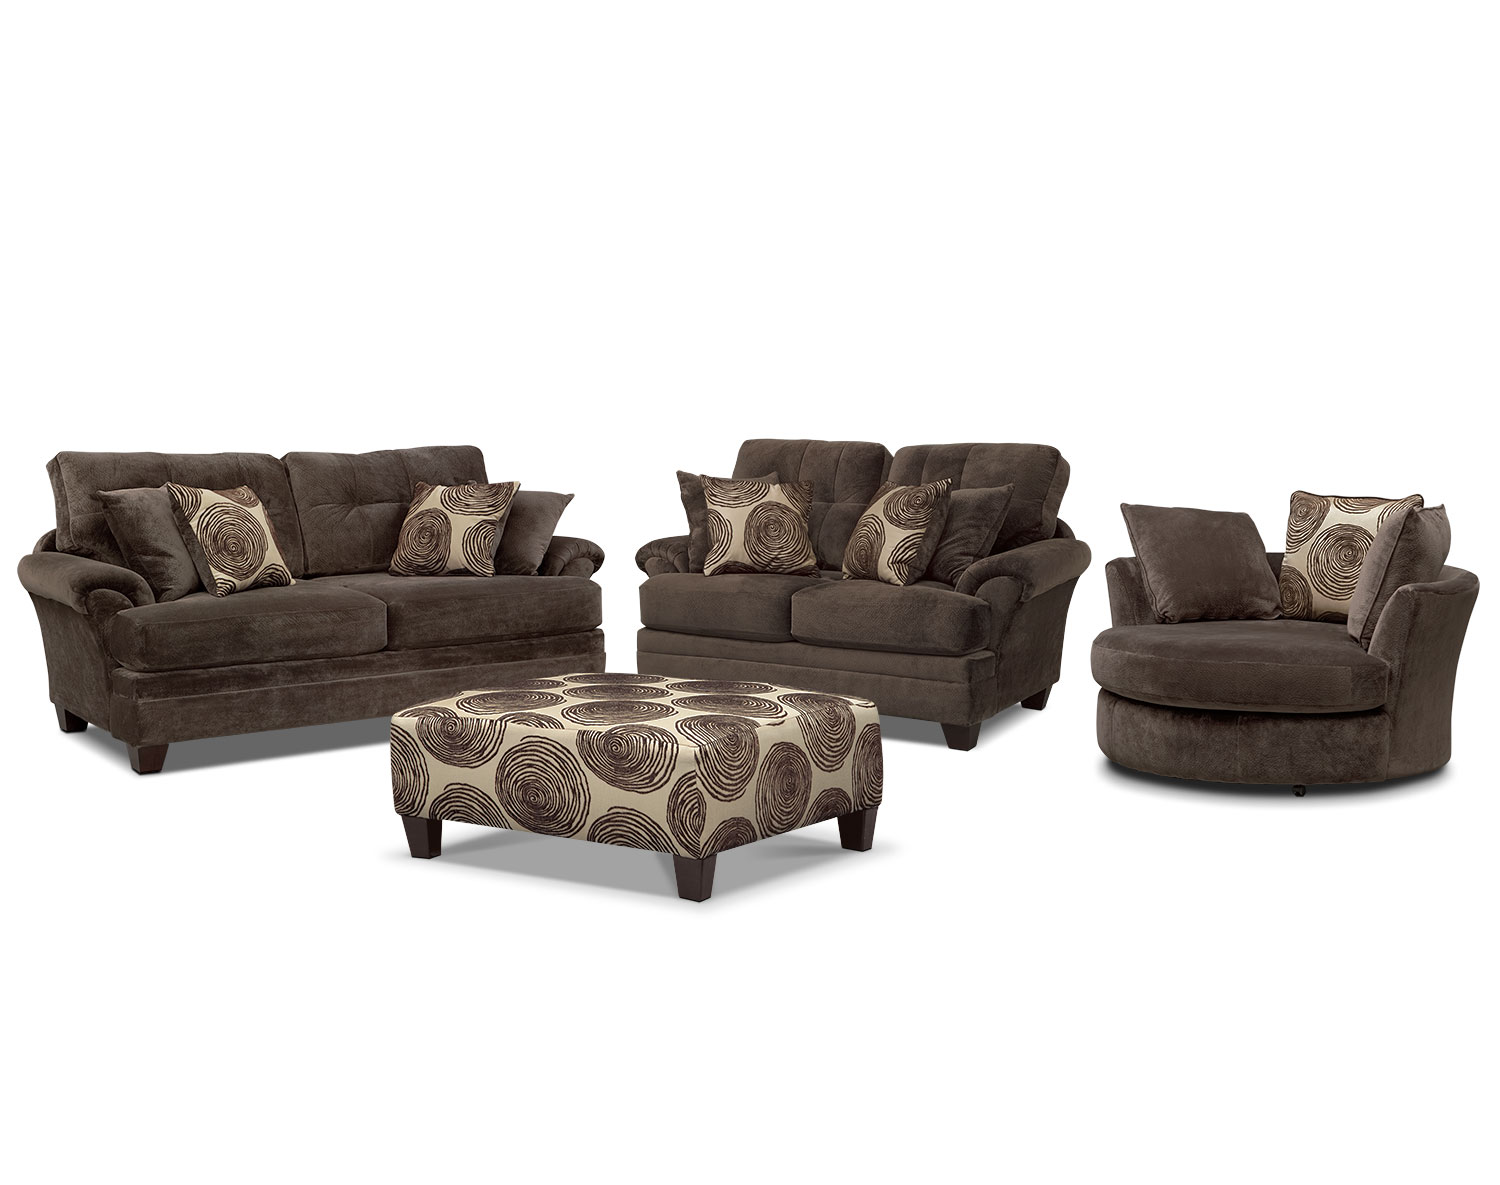 The Cordelle Living Room Collection - Chocolate | Value City ...